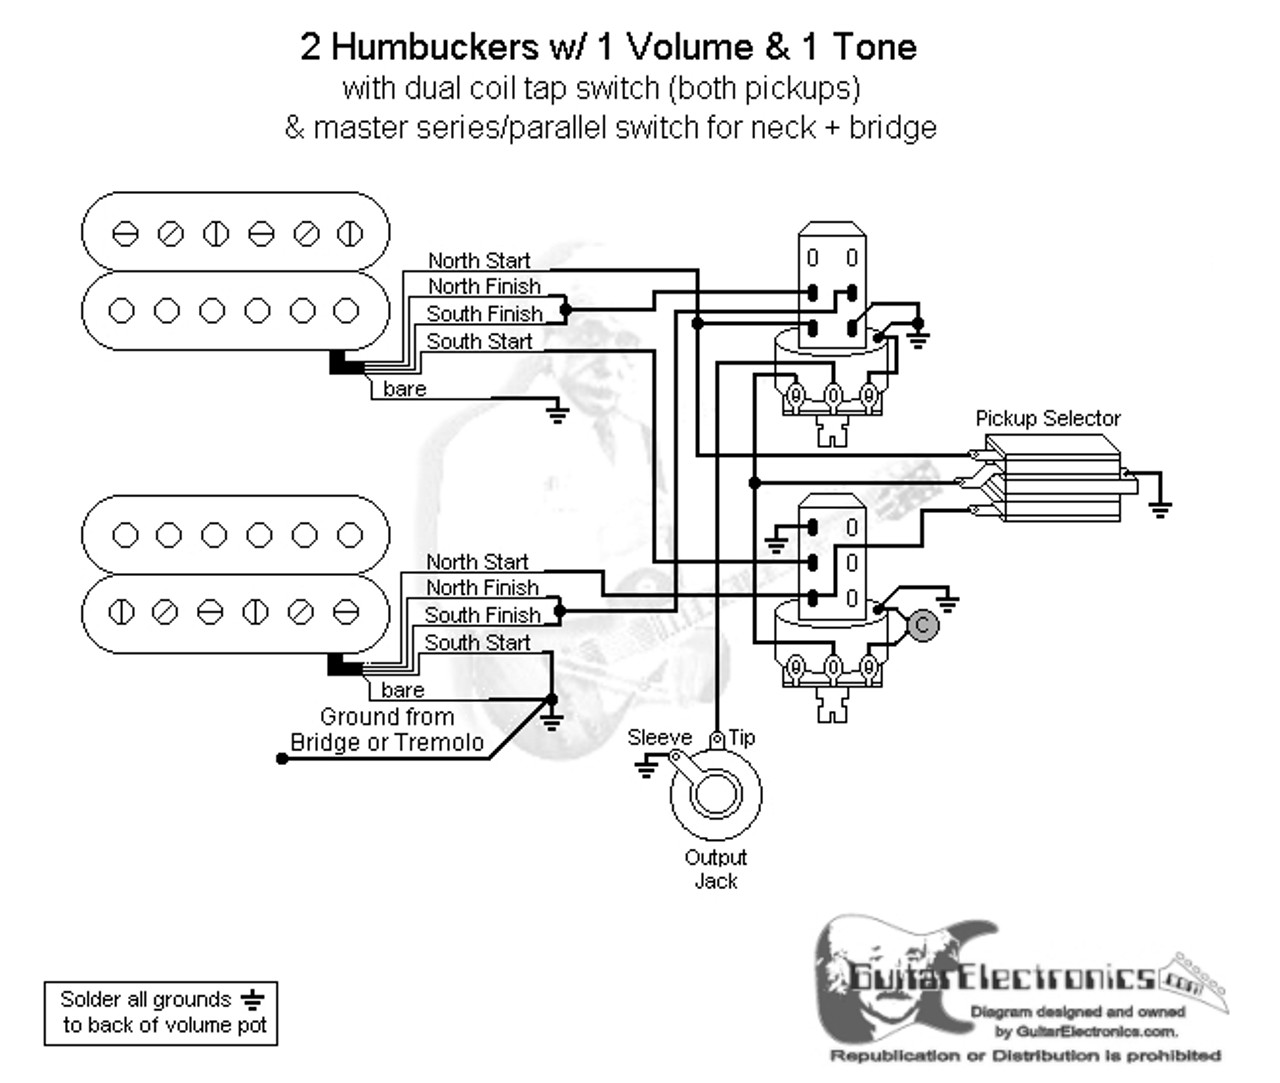 hight resolution of 2 hbs 3 way toggle 1 vol 1 tone coil tap series parallel 2 humbucker 1 vol 1 wiring diagrams